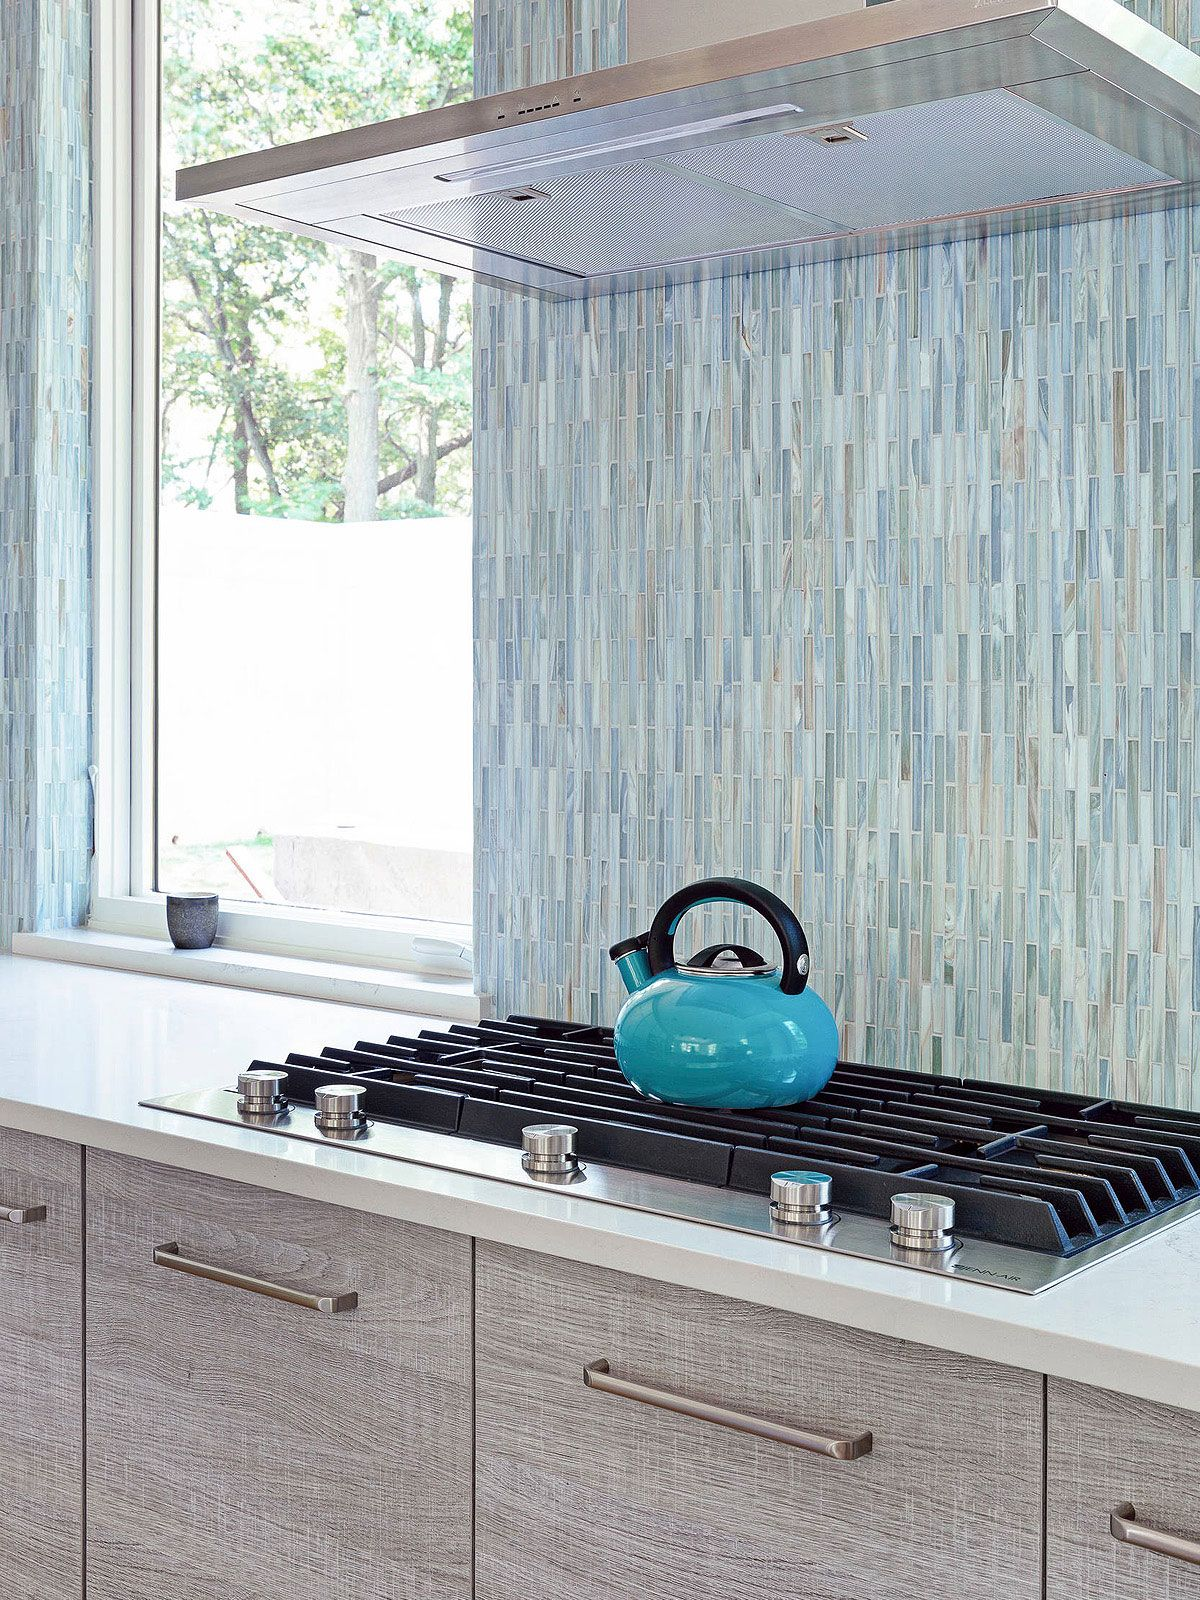 75 Blue Backsplash Ideas Navy Aqua Royal Or Coastal Blue Design Backsplash Tile Design Blue Backsplash Blue Tile Backsplash